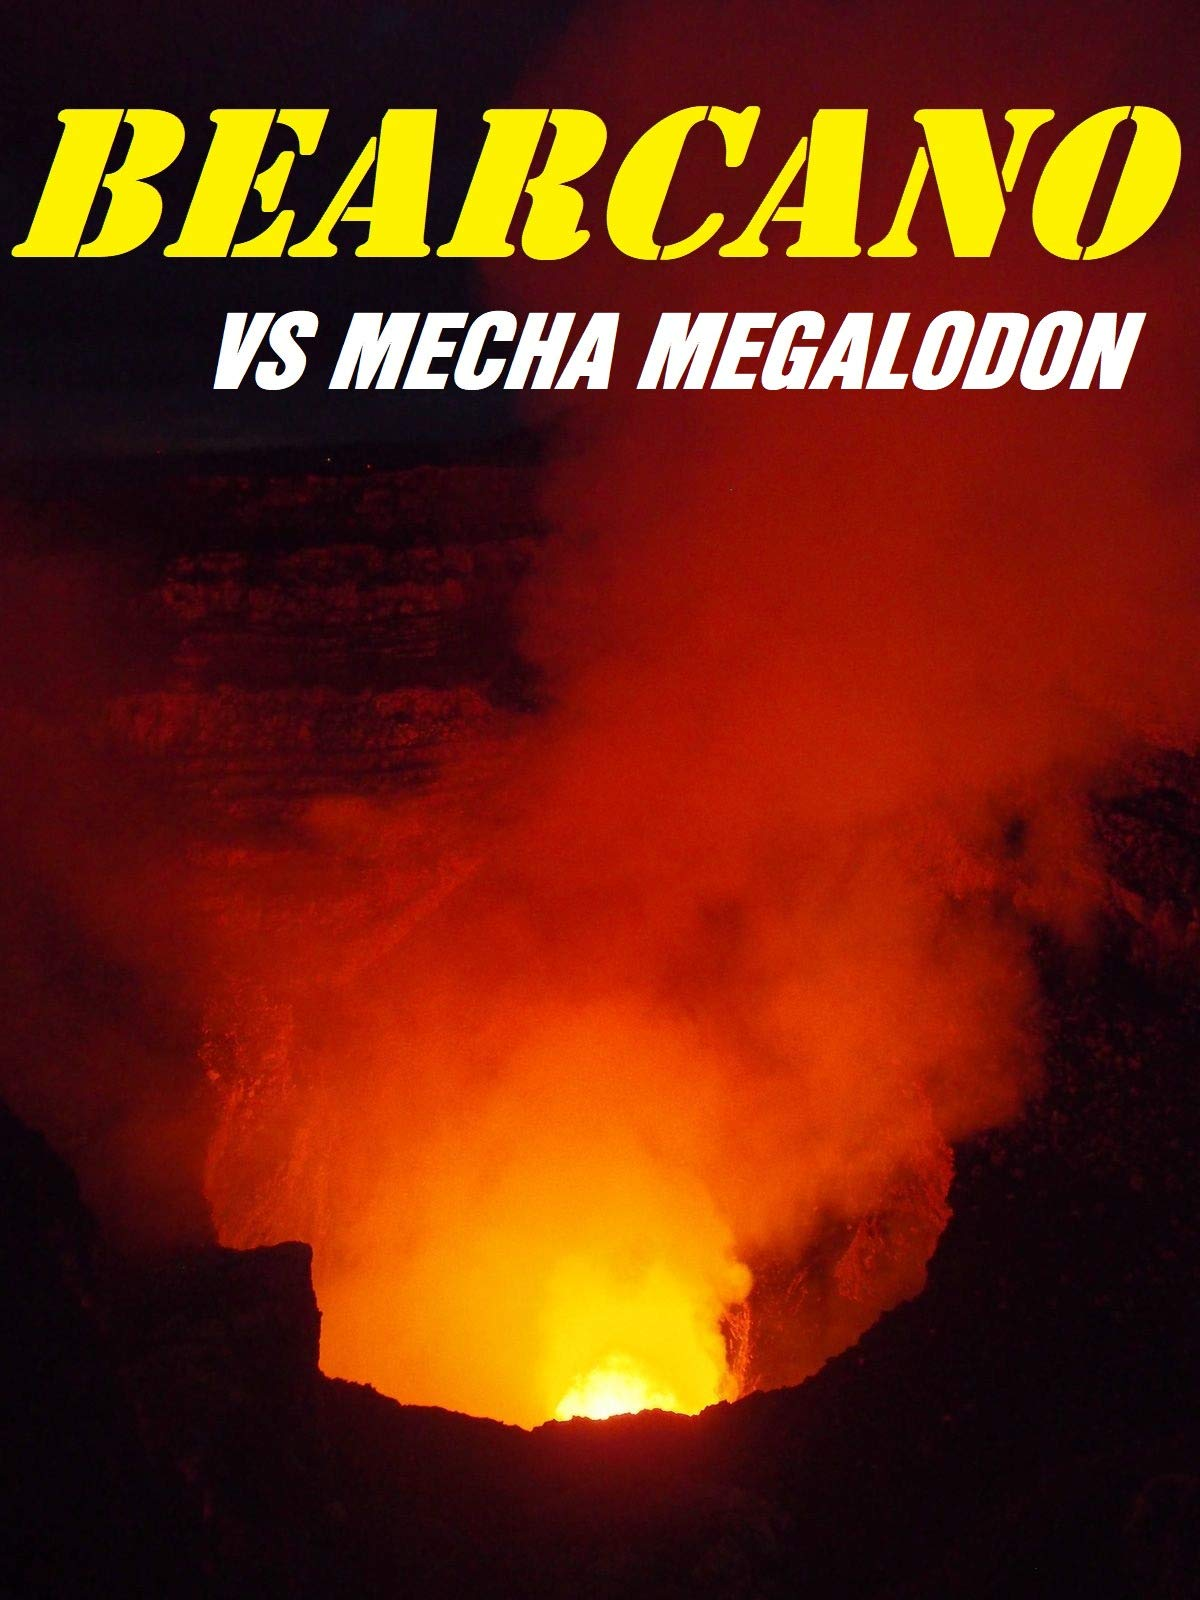 Bearcano VS Mecha Megalodon